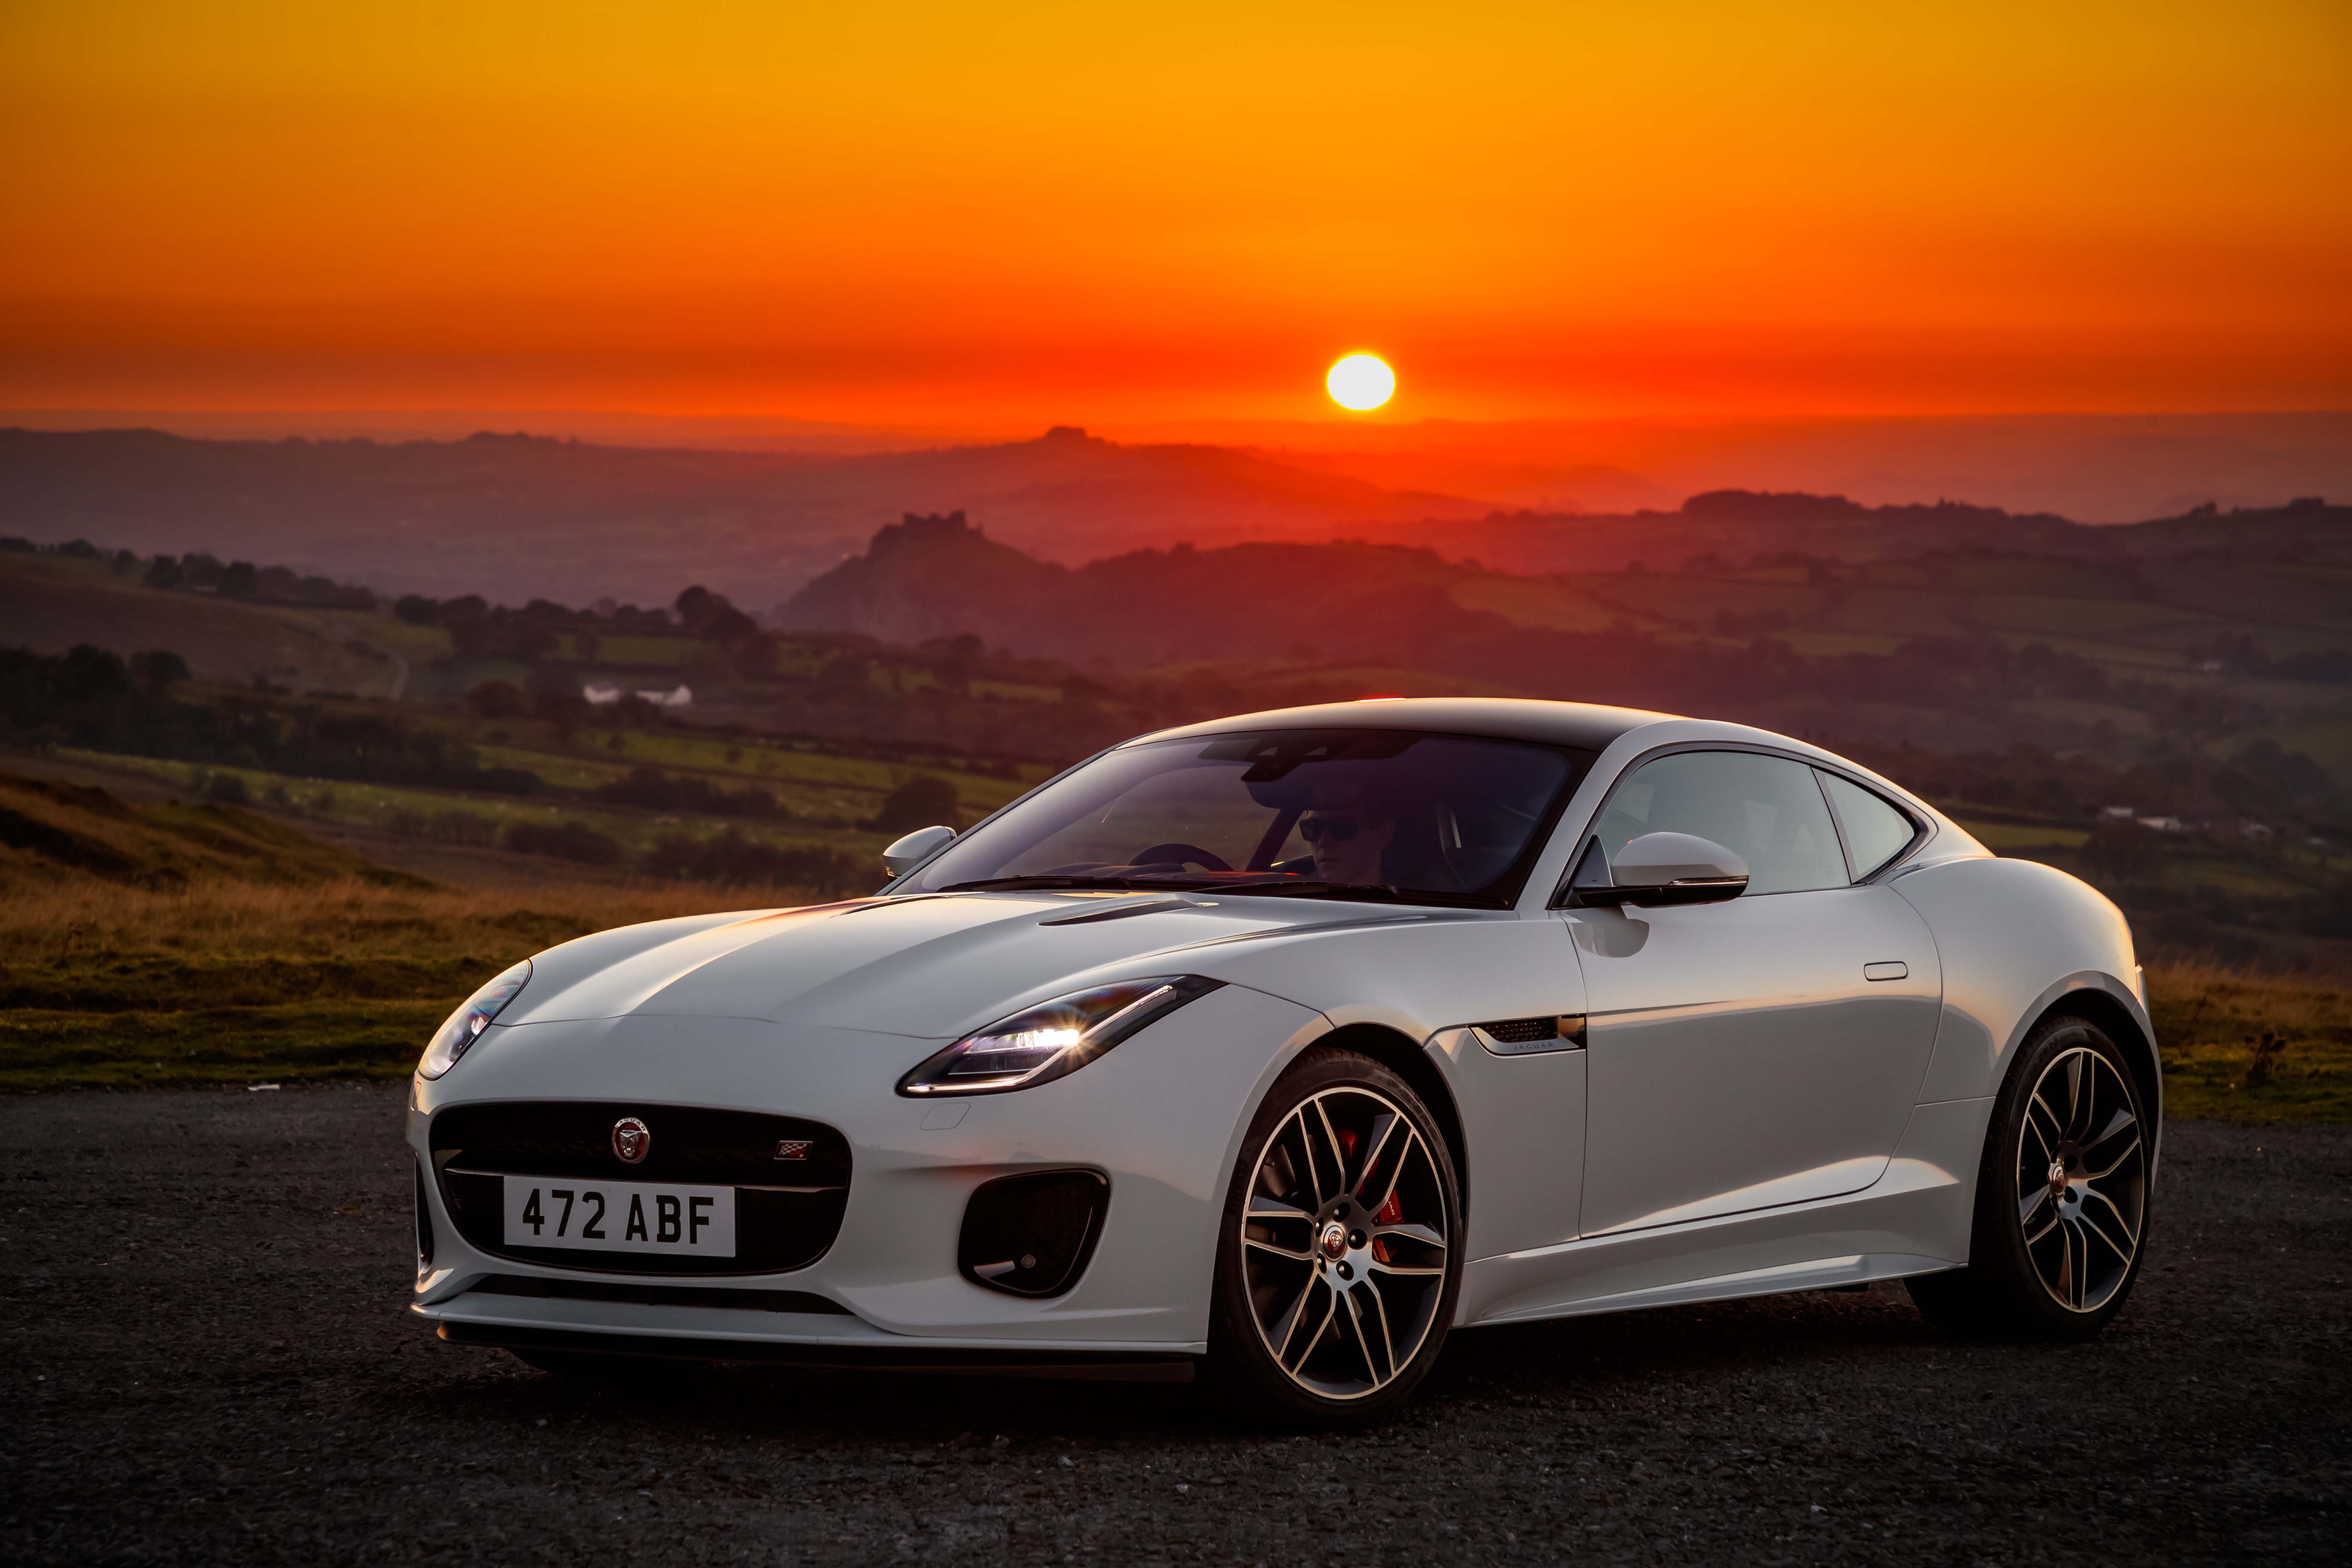 2020 Jaguar F-TYPE Checkered Flag Limited Edition ...